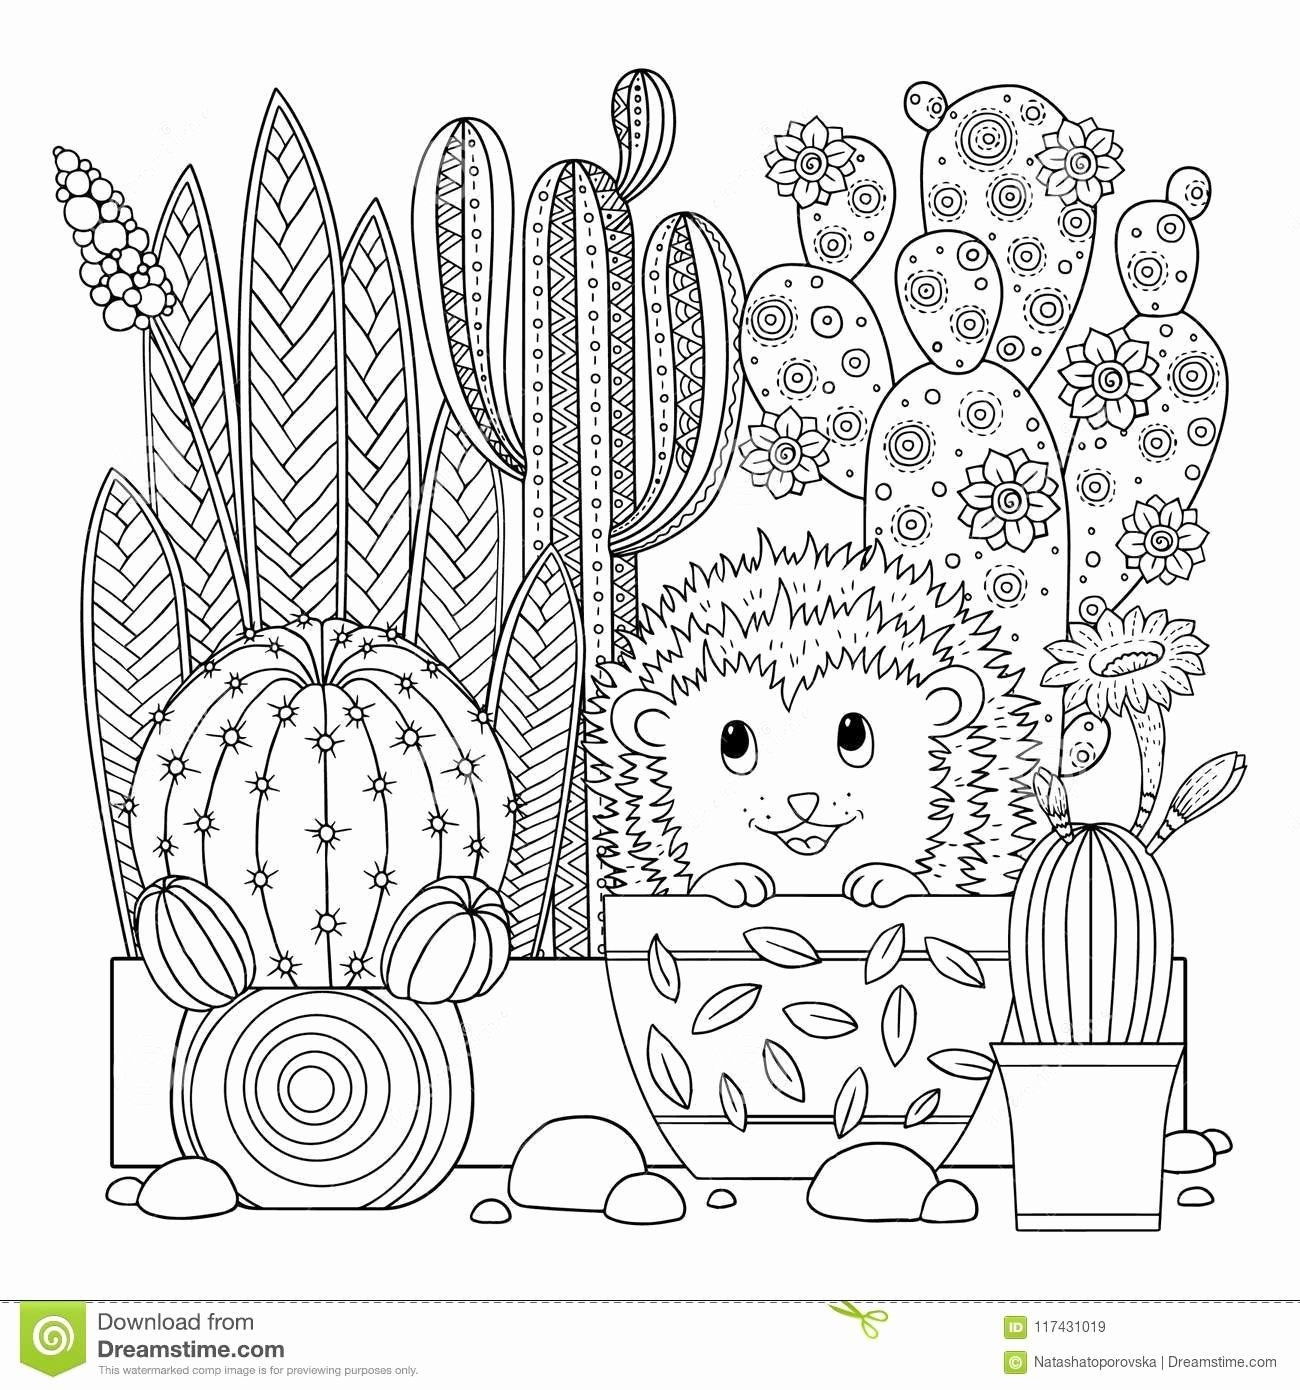 Cute Cactus Coloring Page Luxury Vector Coloring Page Linear Image White Background Coloring Pages Coloring Books Precious Moments Coloring Pages